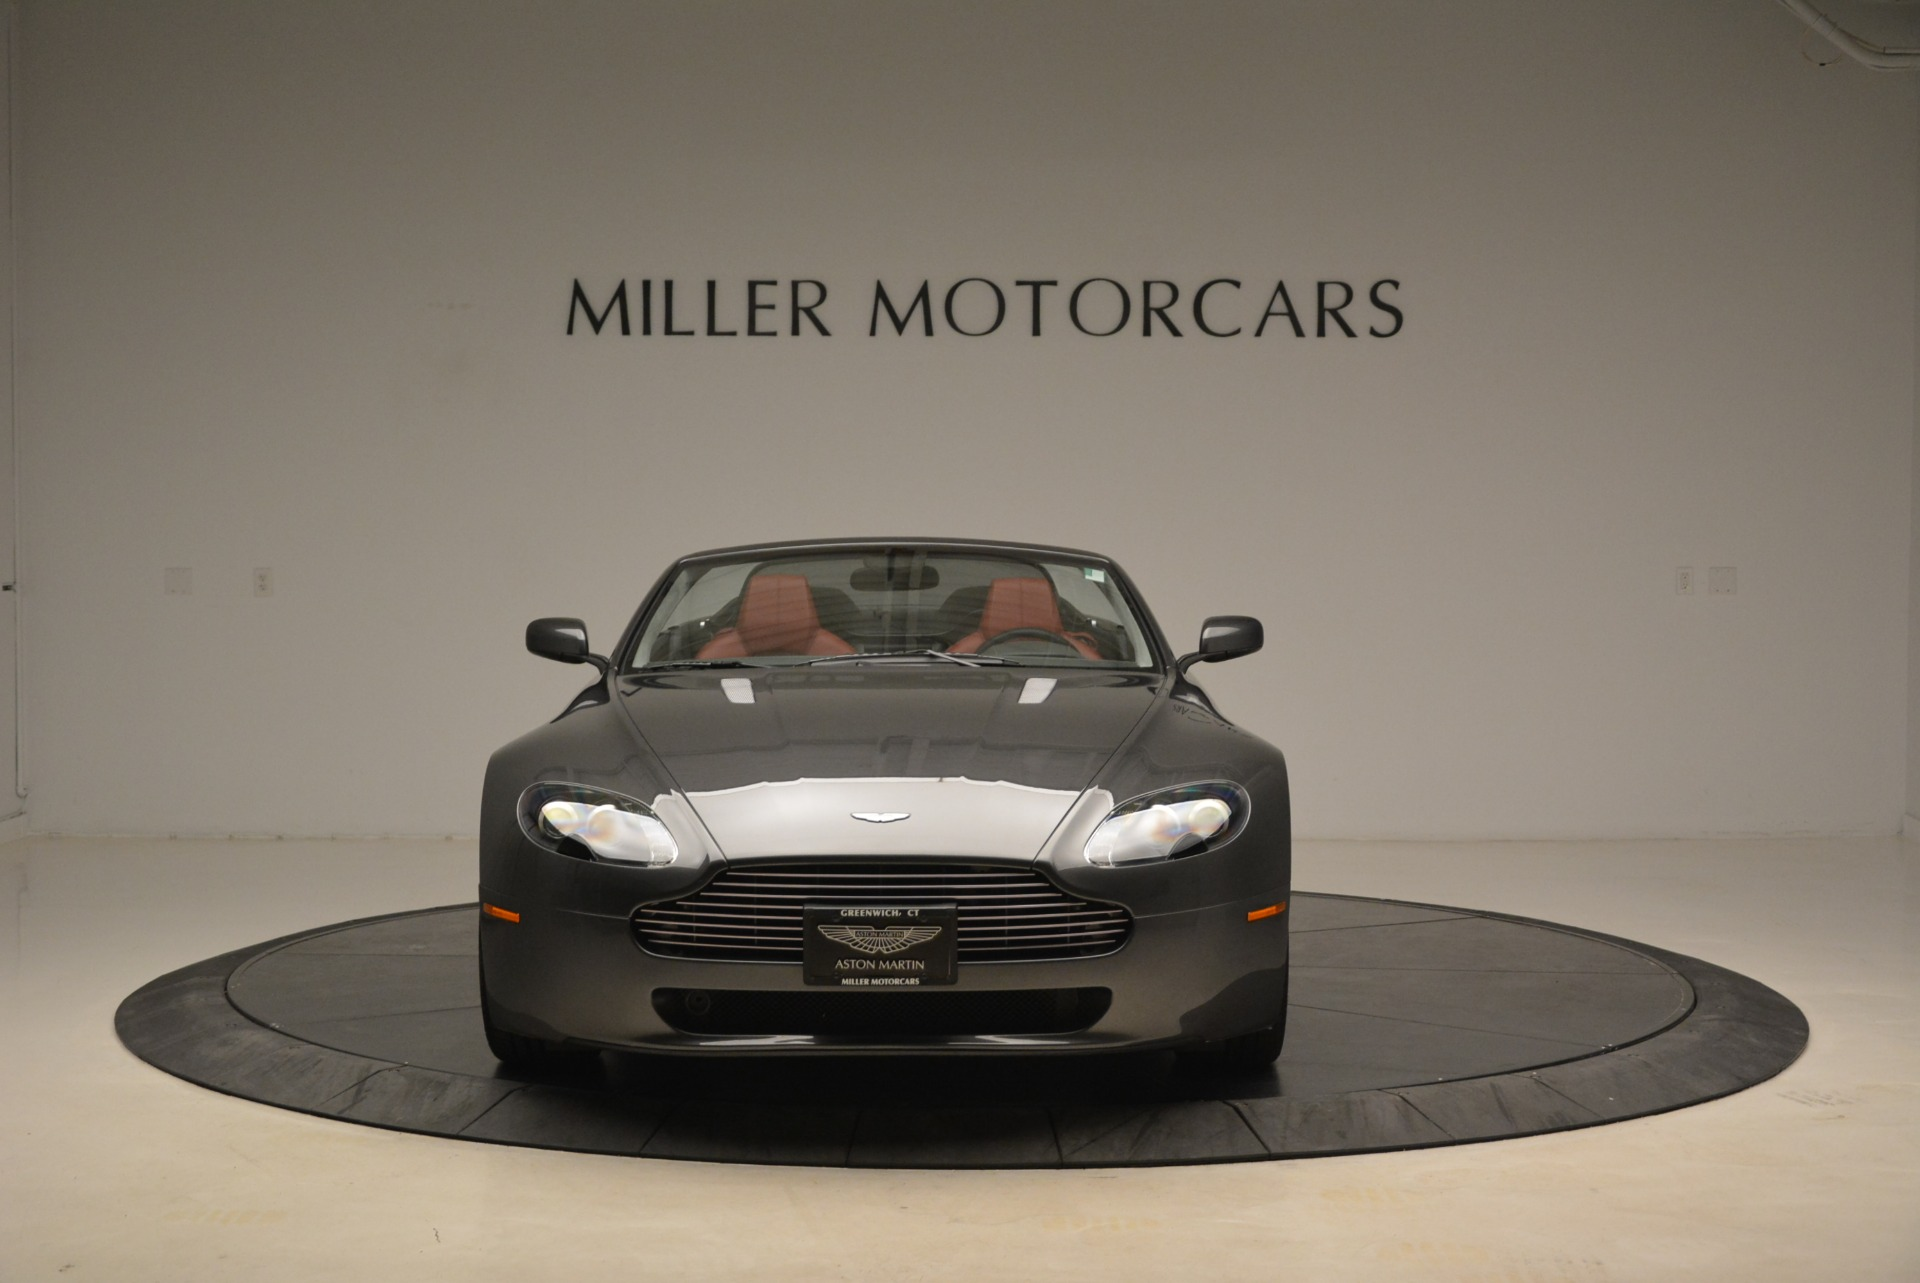 Used 2009 Aston Martin V8 Vantage Roadster For Sale In Westport, CT 2123_p12